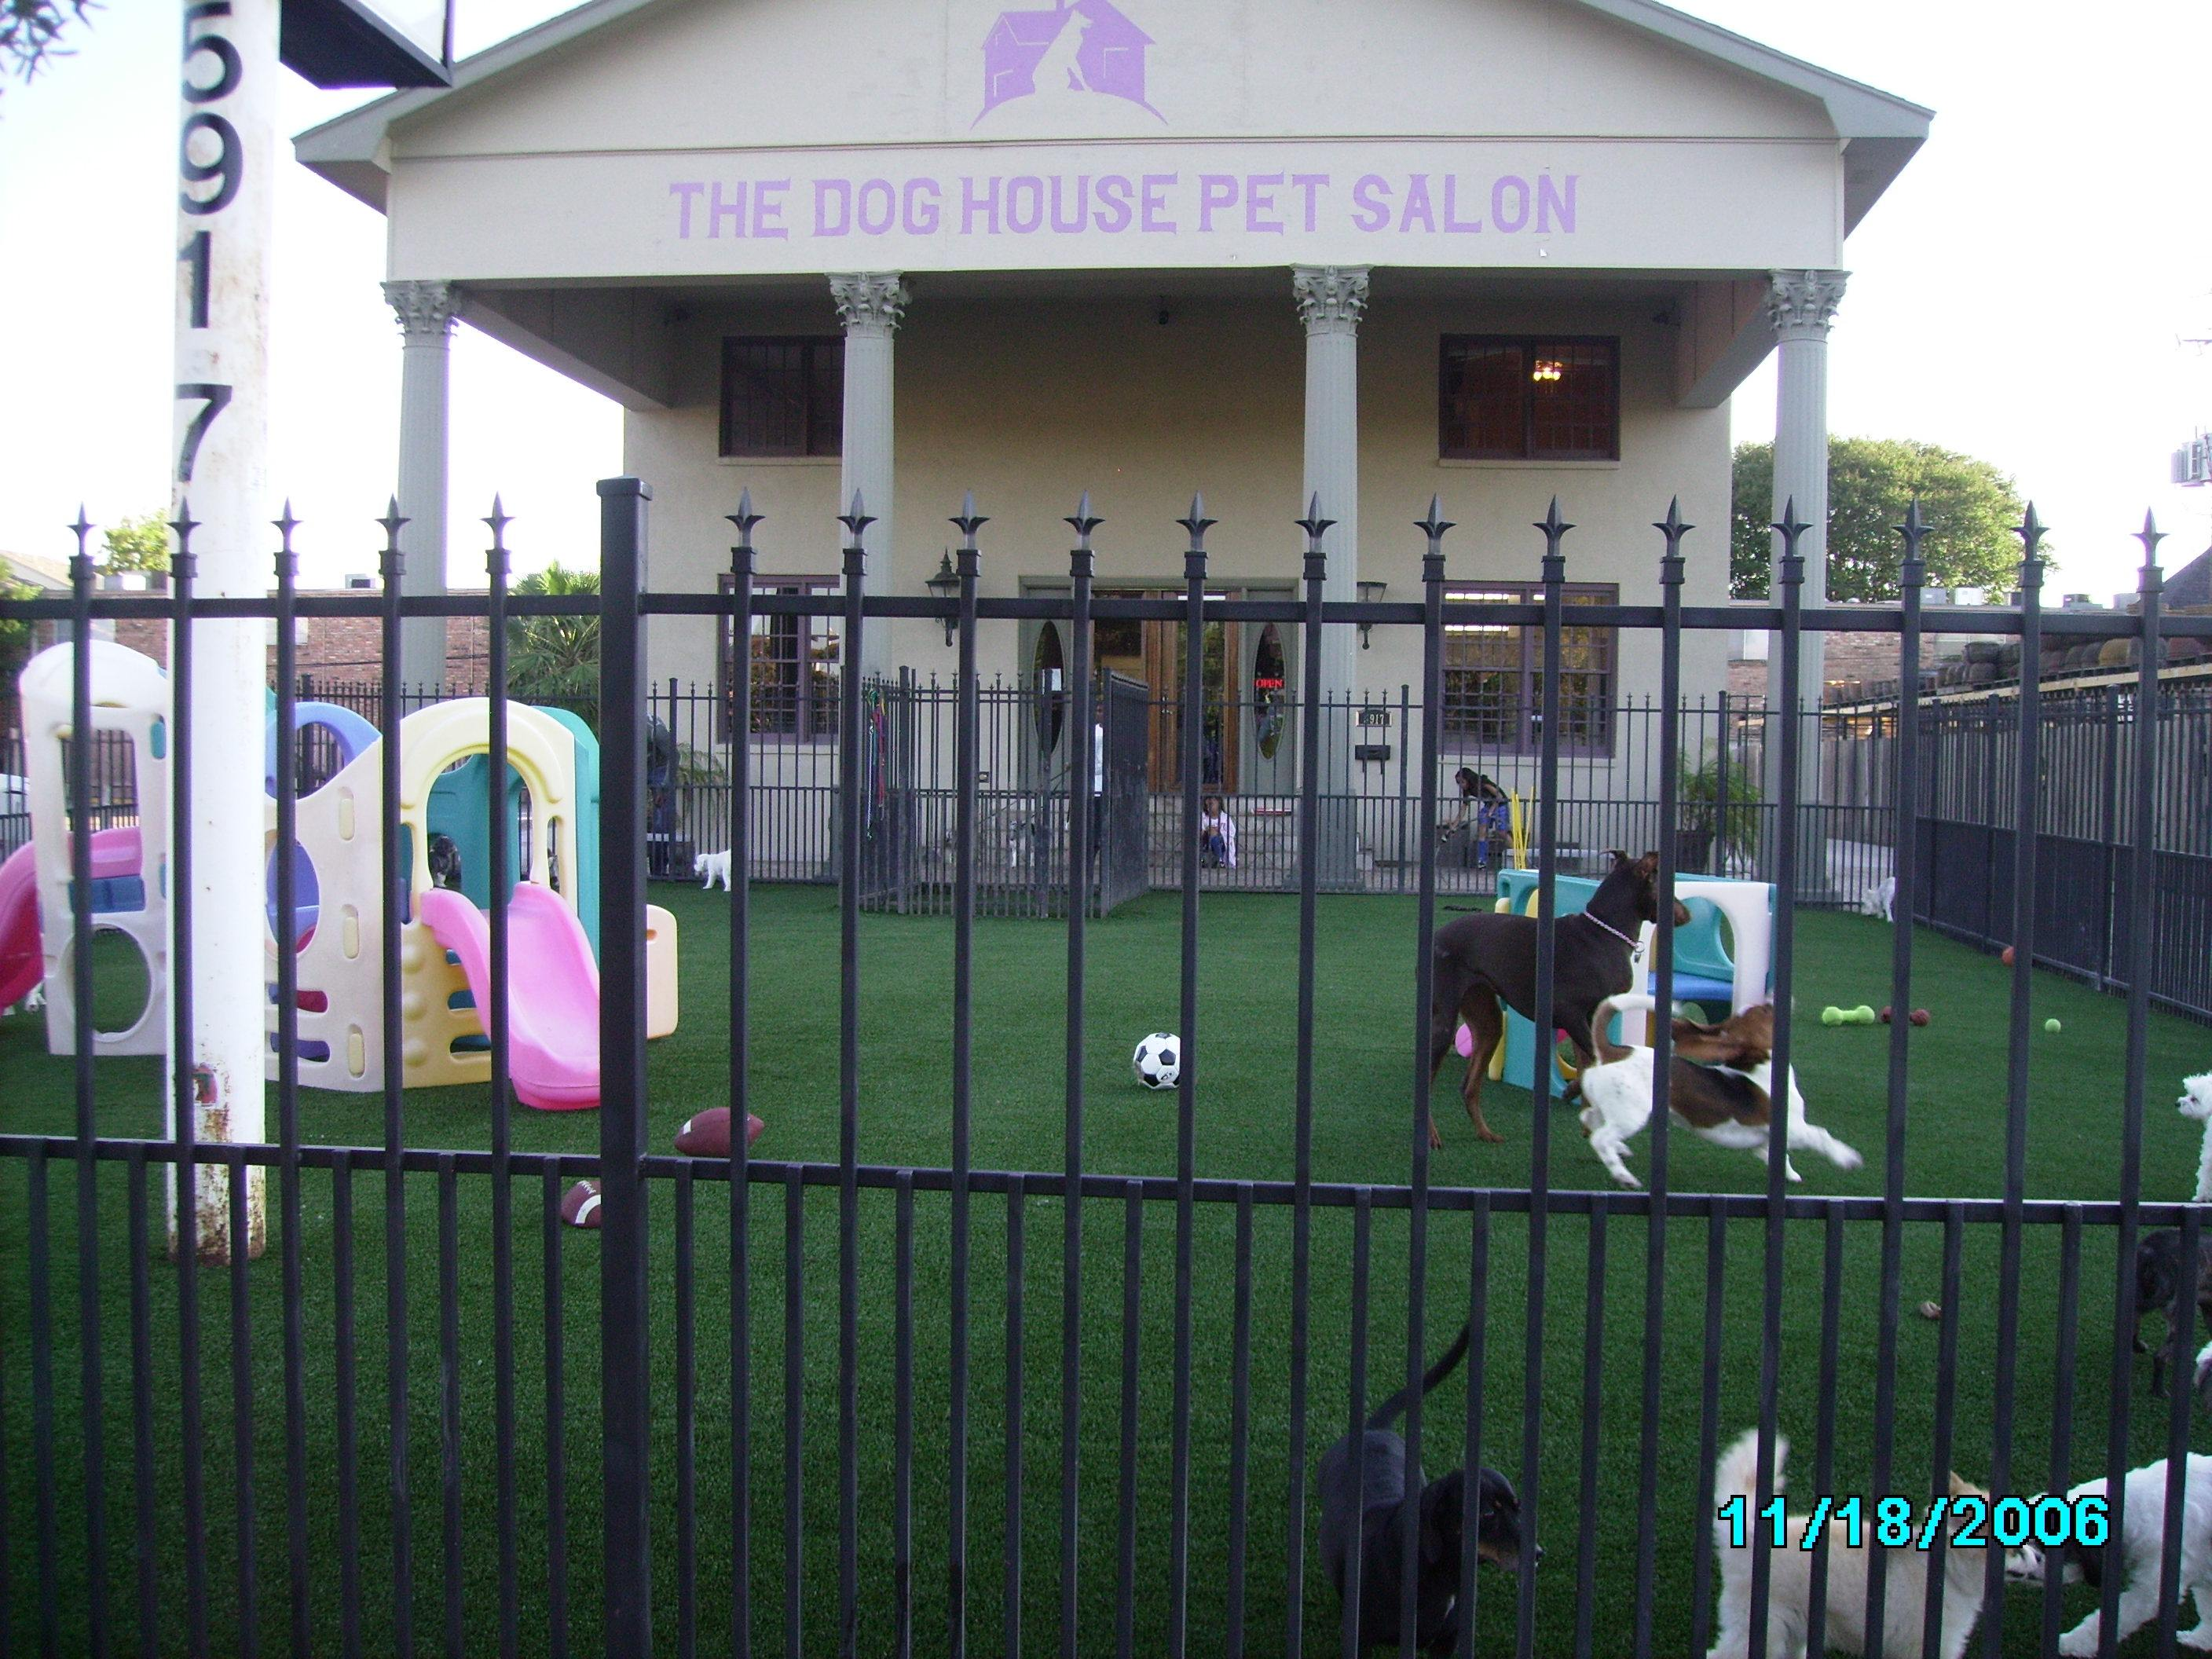 Photo gallery artificial grass k9grass by foreverlawn for The dog house pet salon